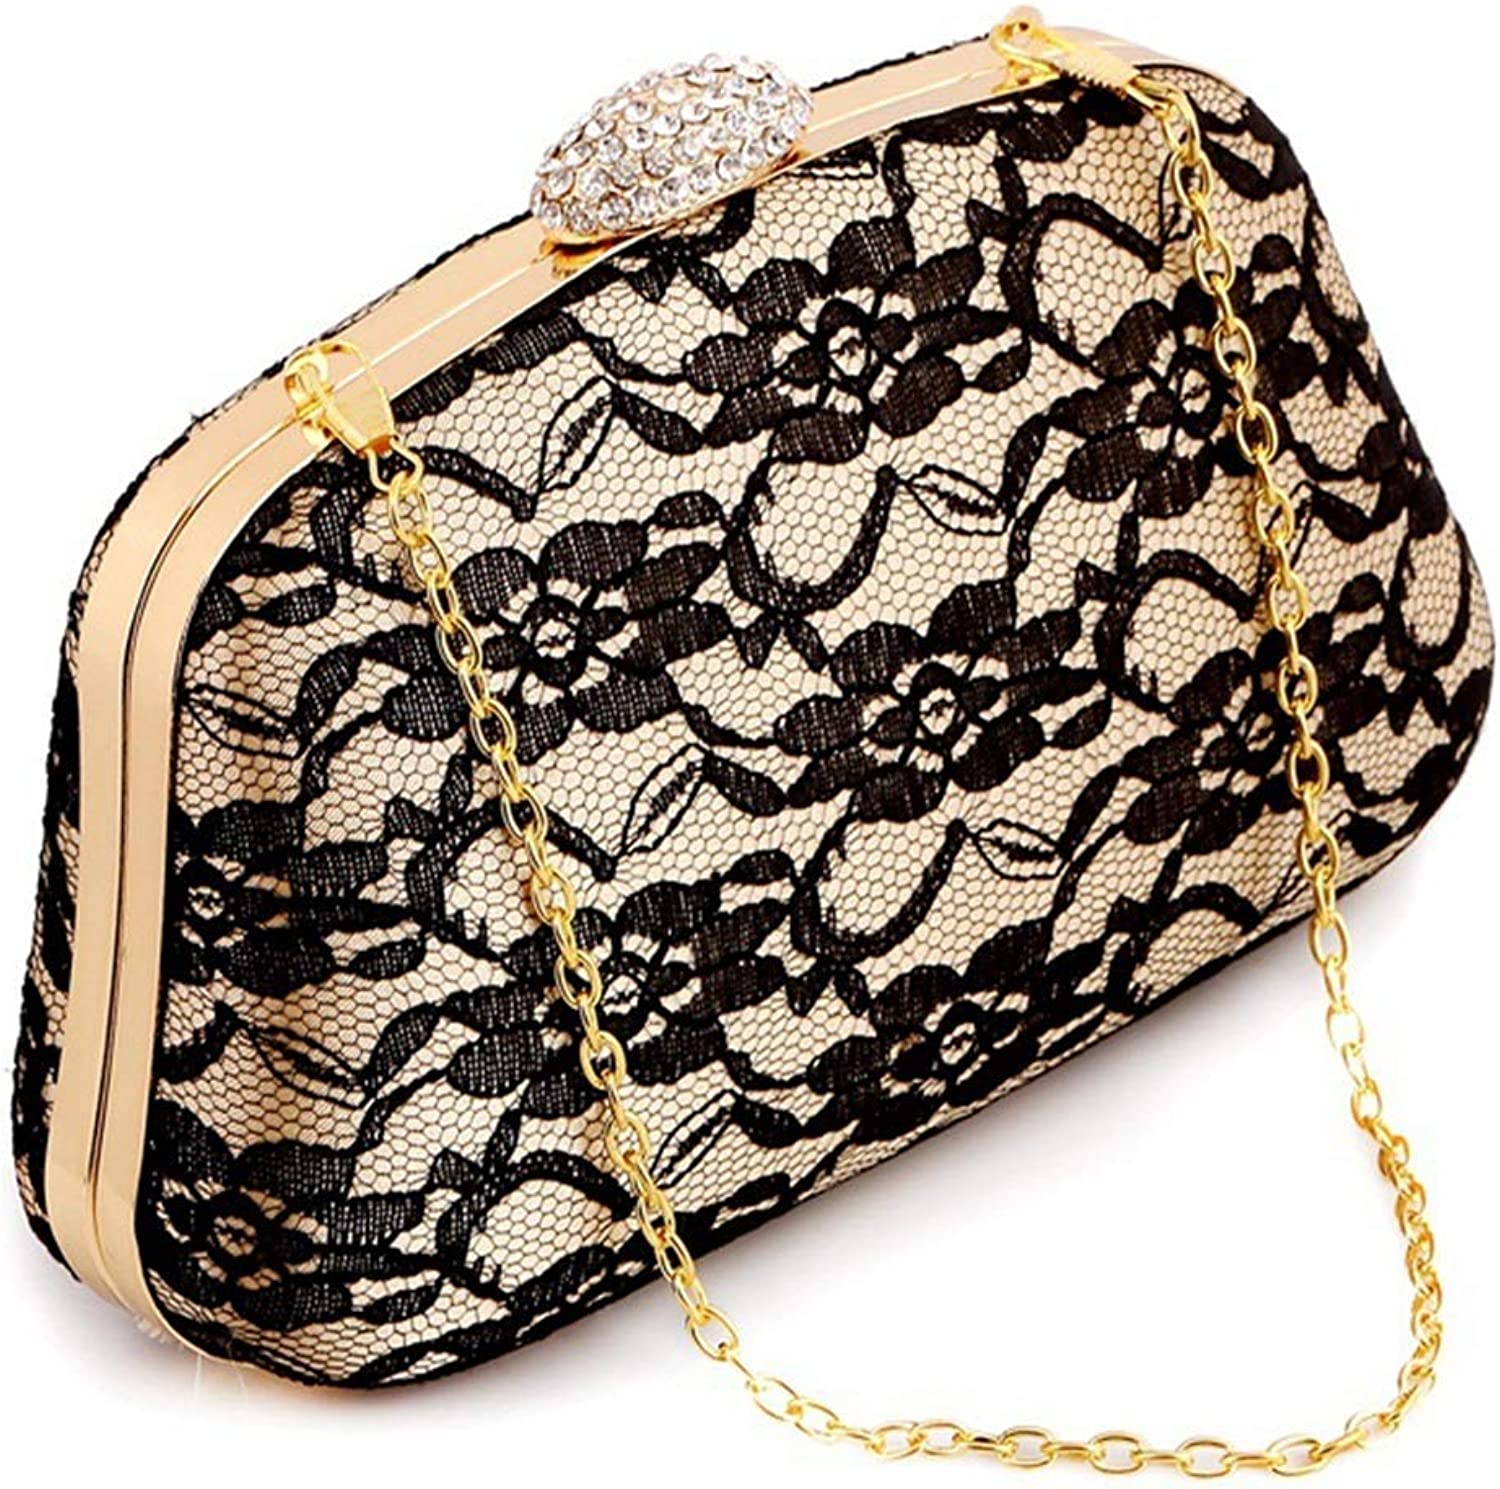 Ladies Handbag Lace Evening Bag Hard Case with Drill Clutch Retro Lady Party Chain Bag Evening Package (color   Apricot)